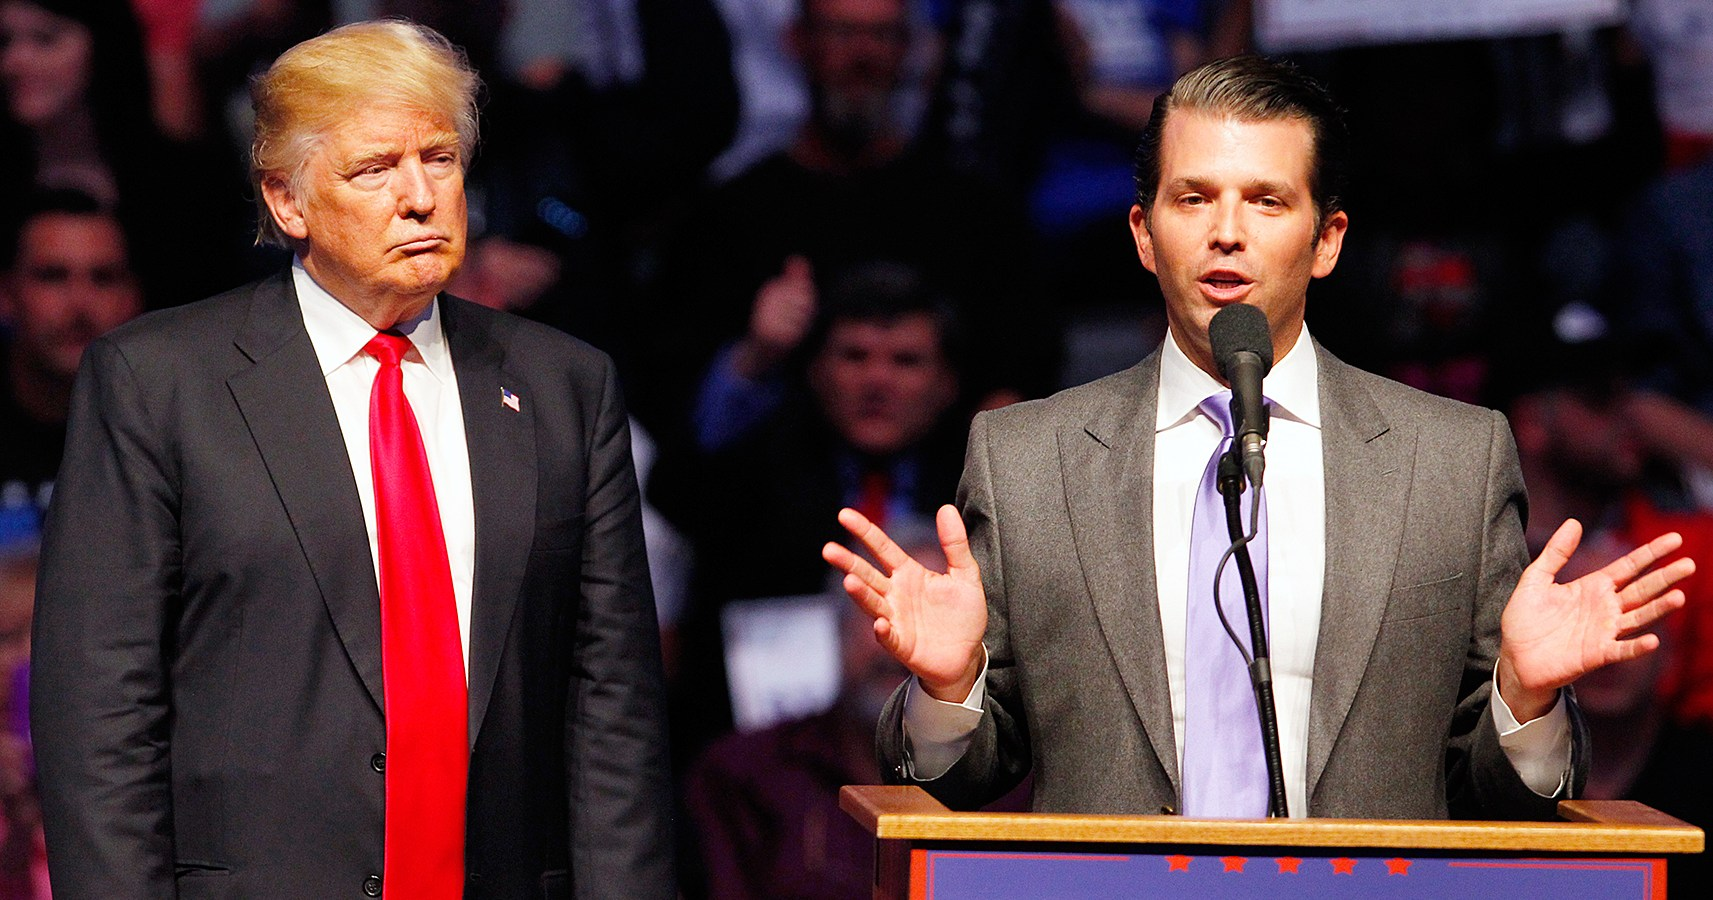 Image result for images of Trump and Trump Jr.